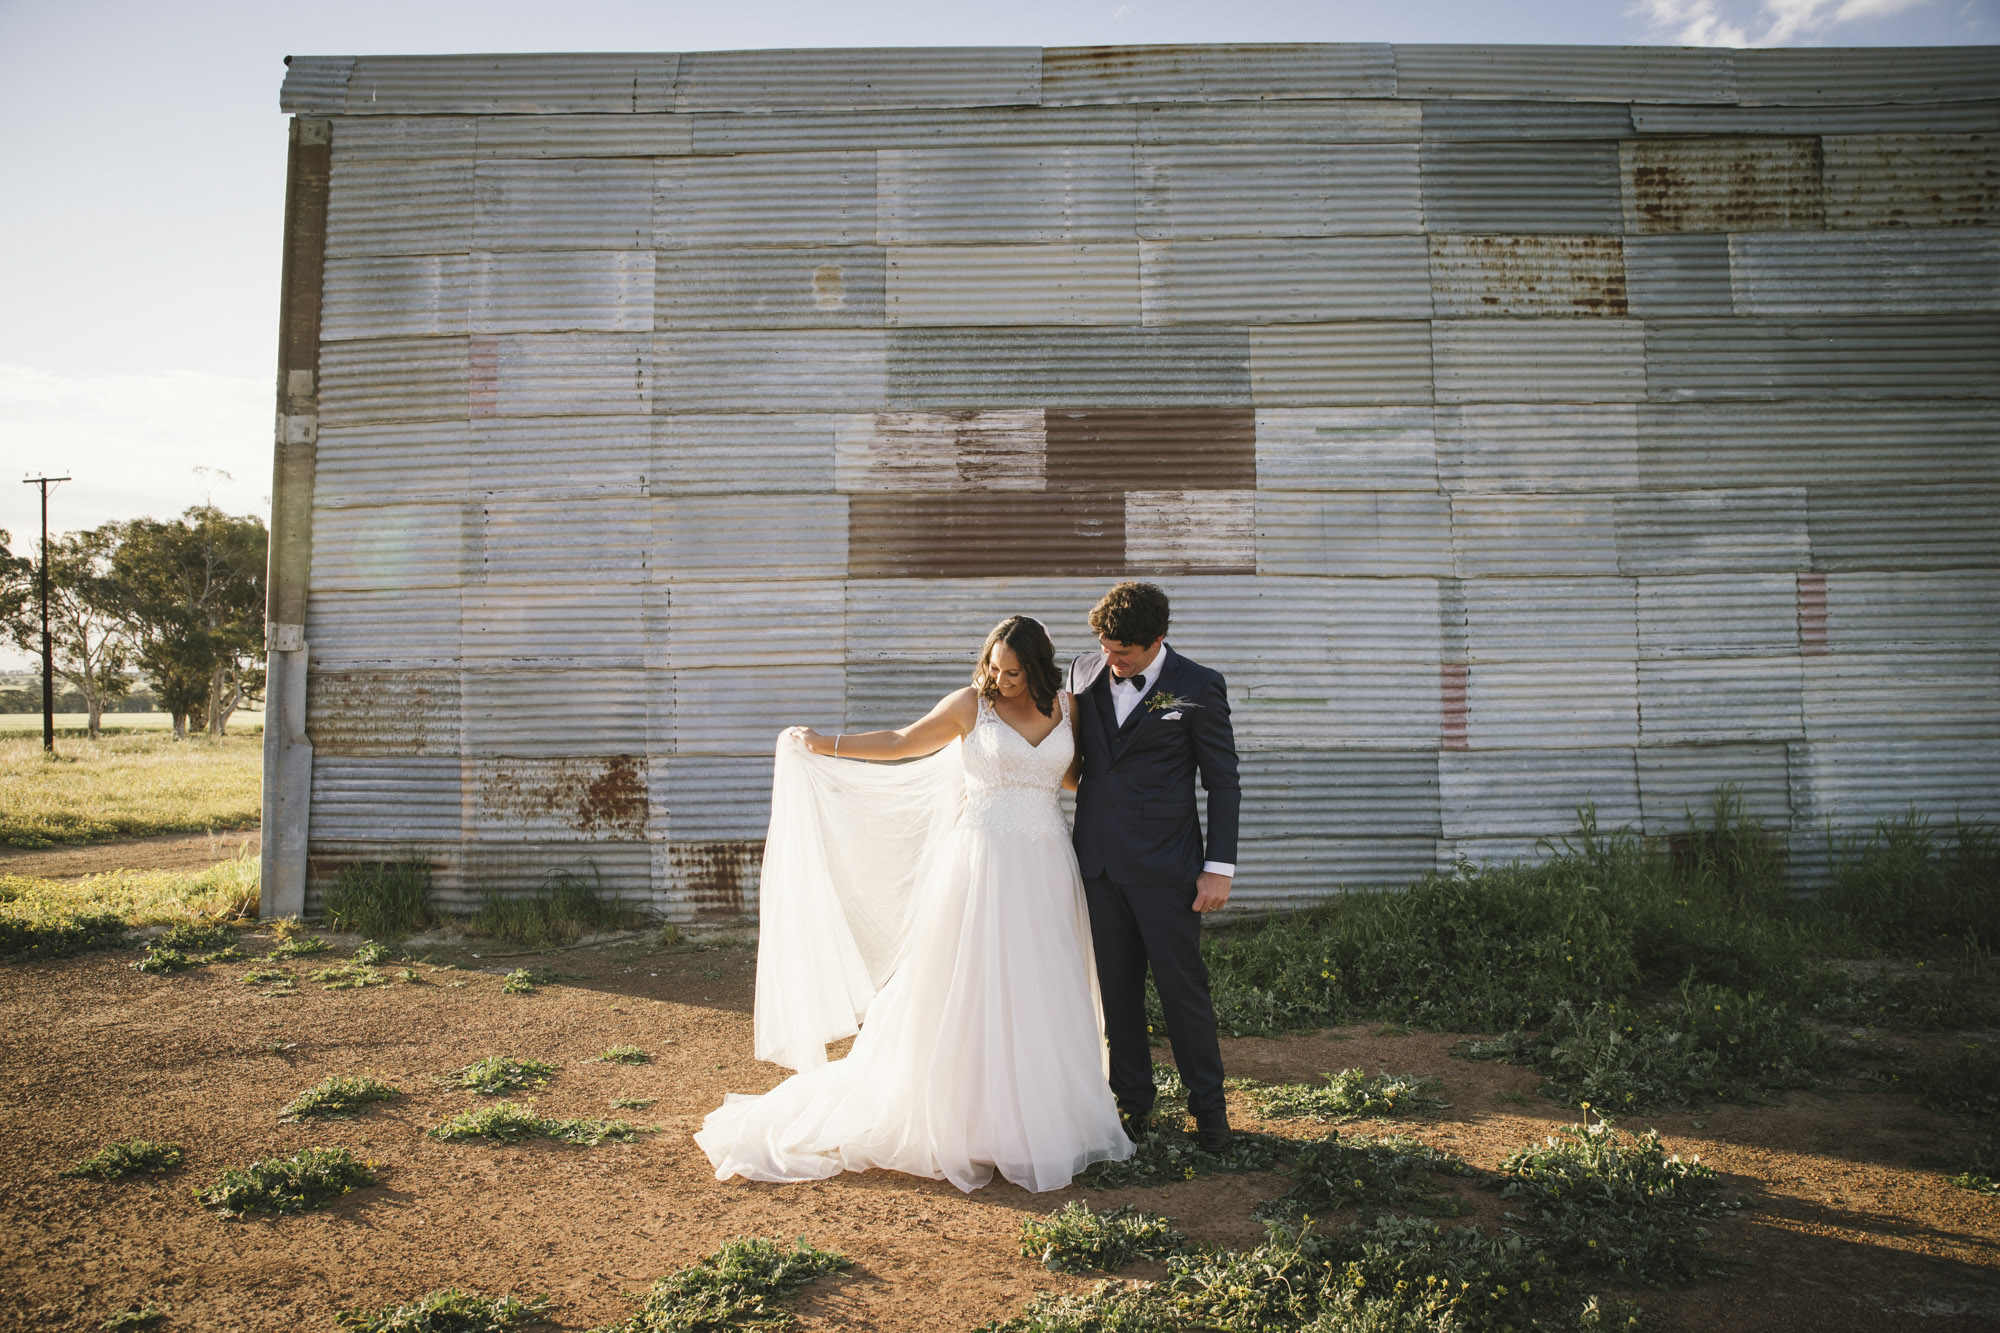 Angie-Roe-Photography-Wedding-Perth-Northam-Wheatbelt-Country-Rural (36).jpg